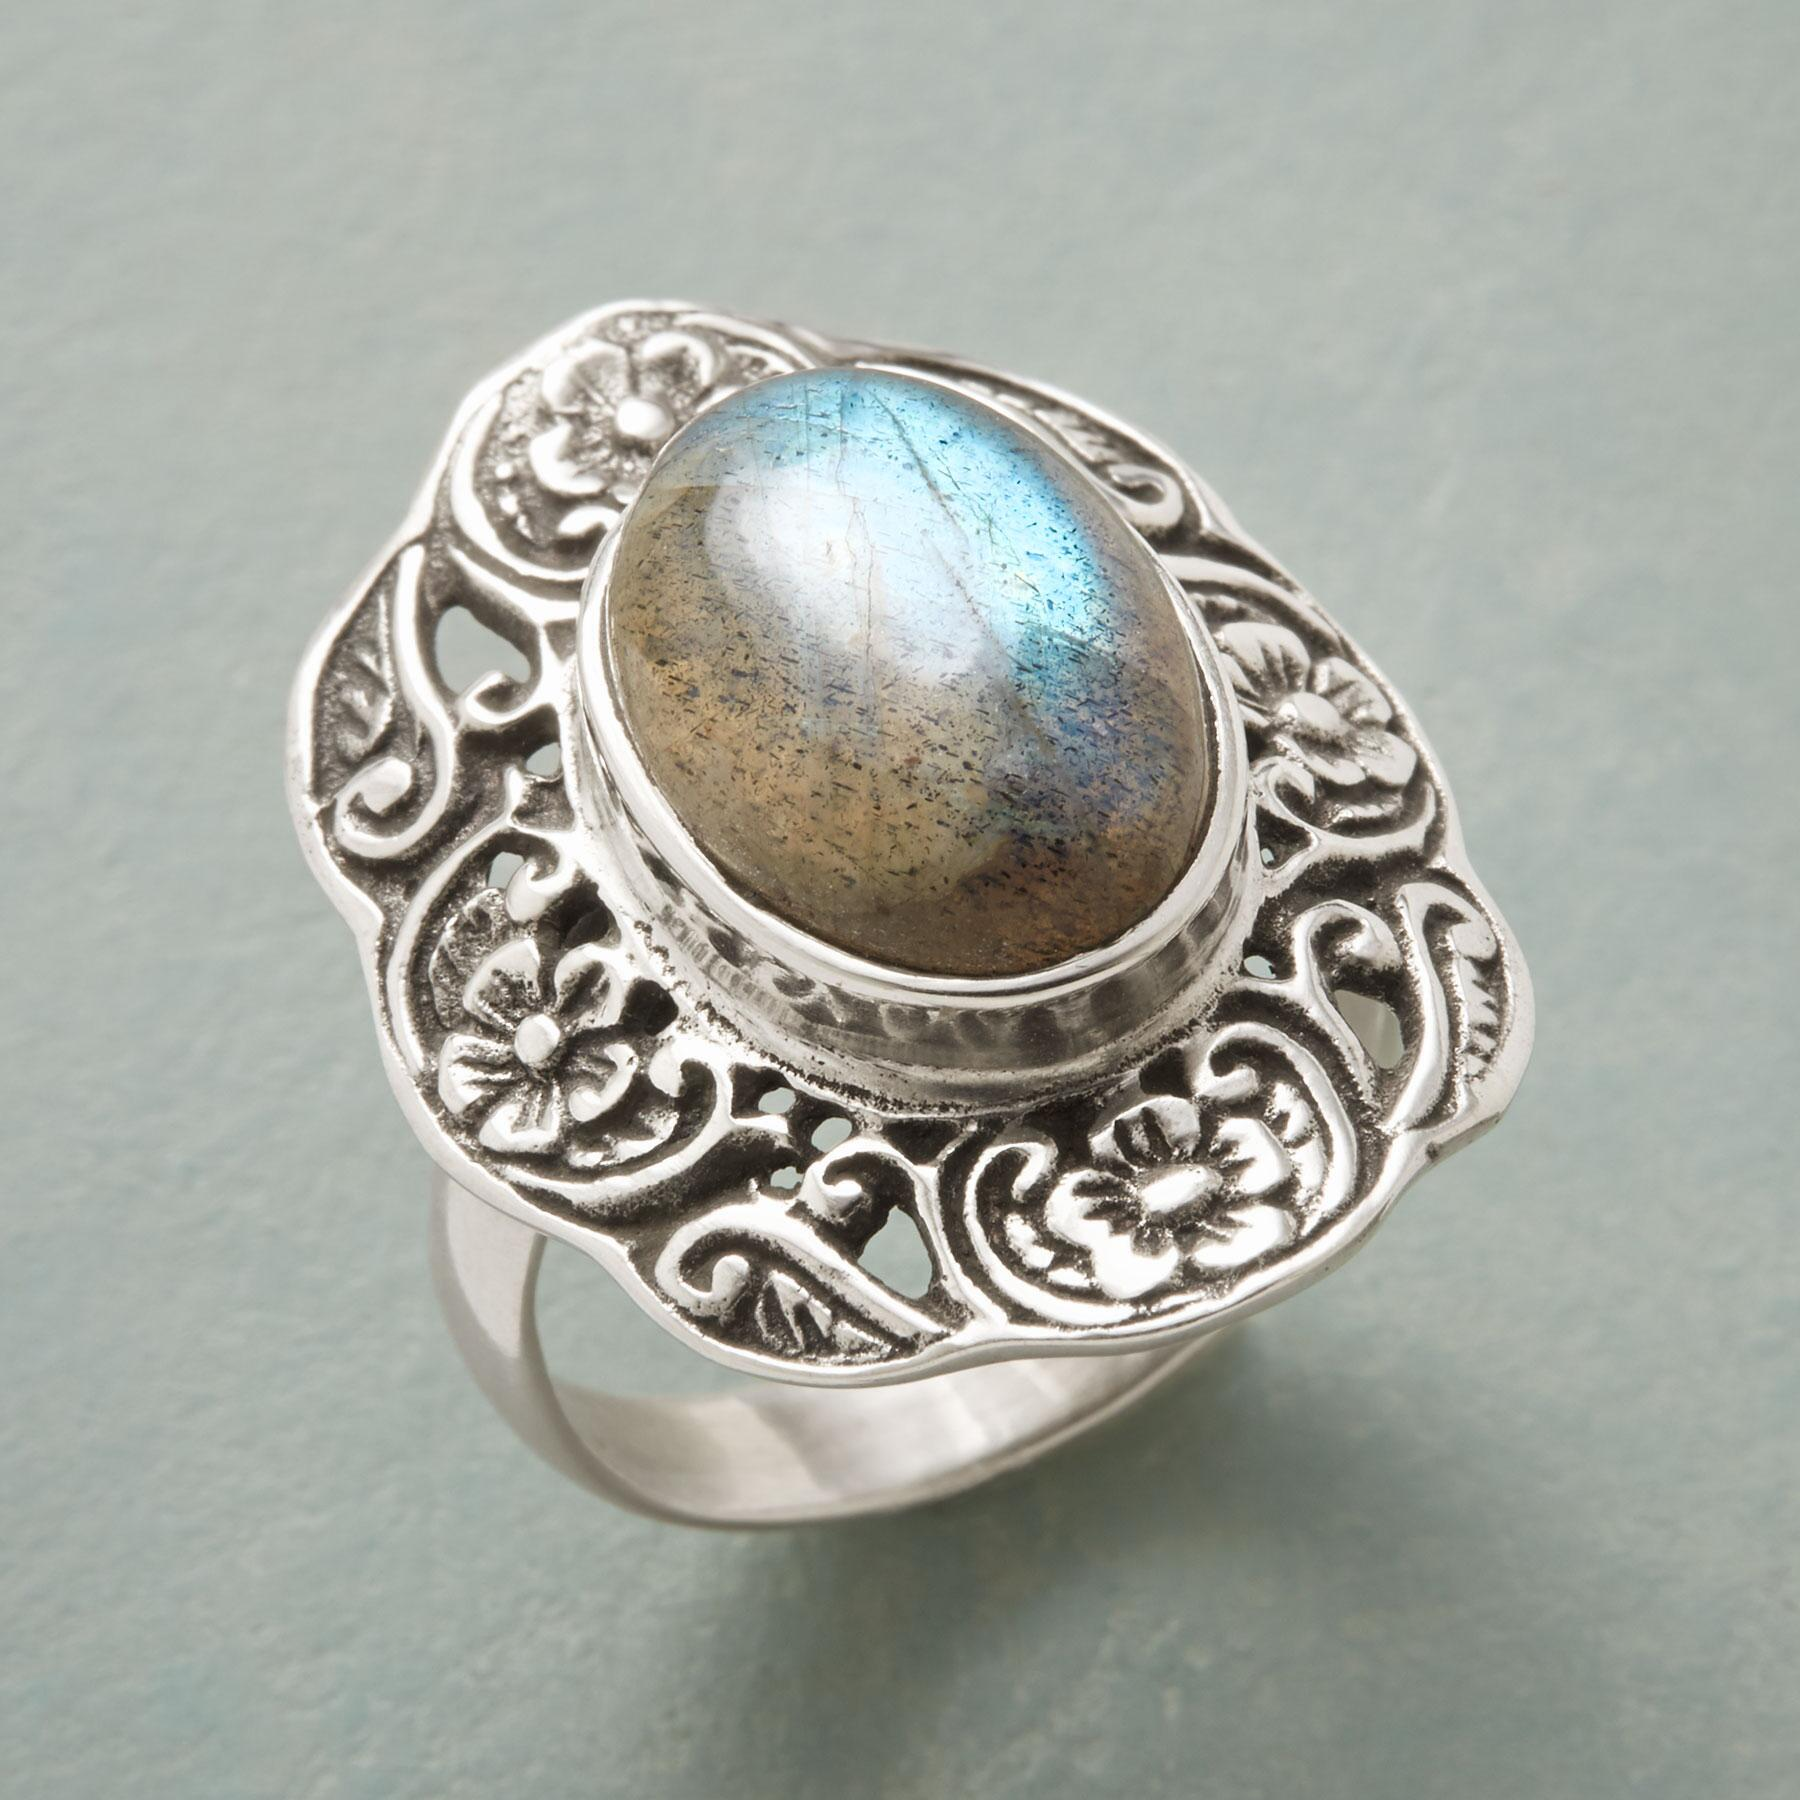 RIMMED LABRADORITE RING: View 1